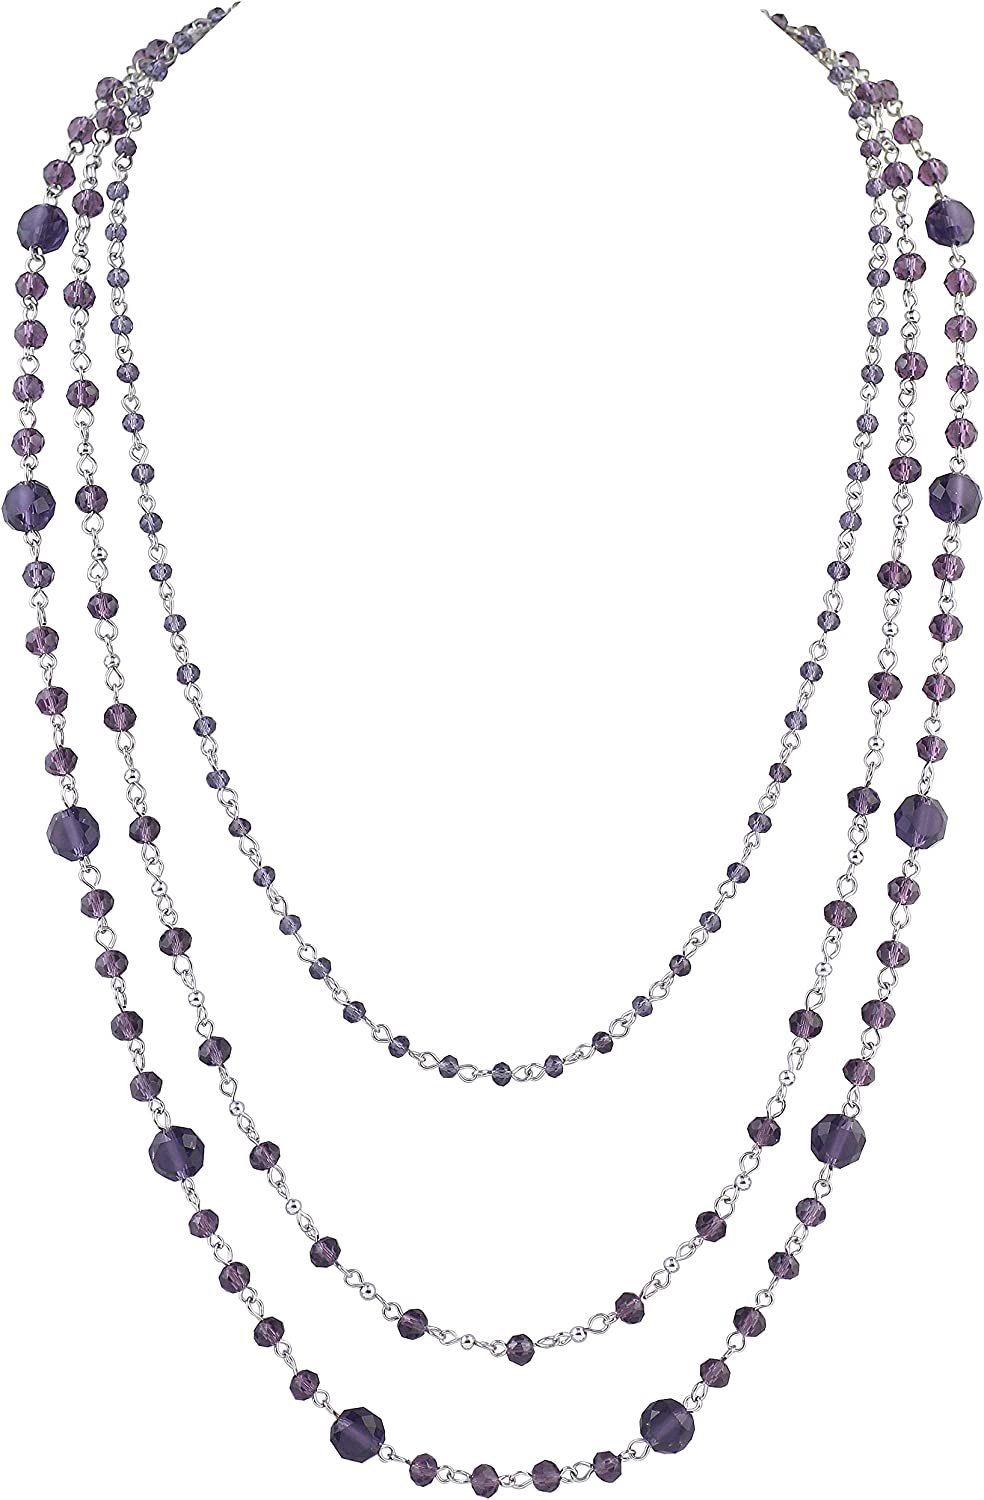 Firstmeet Long Chain Multi Layer Fashion Glass Beads Handmade Necklace for Women(XL-1035-Purple)